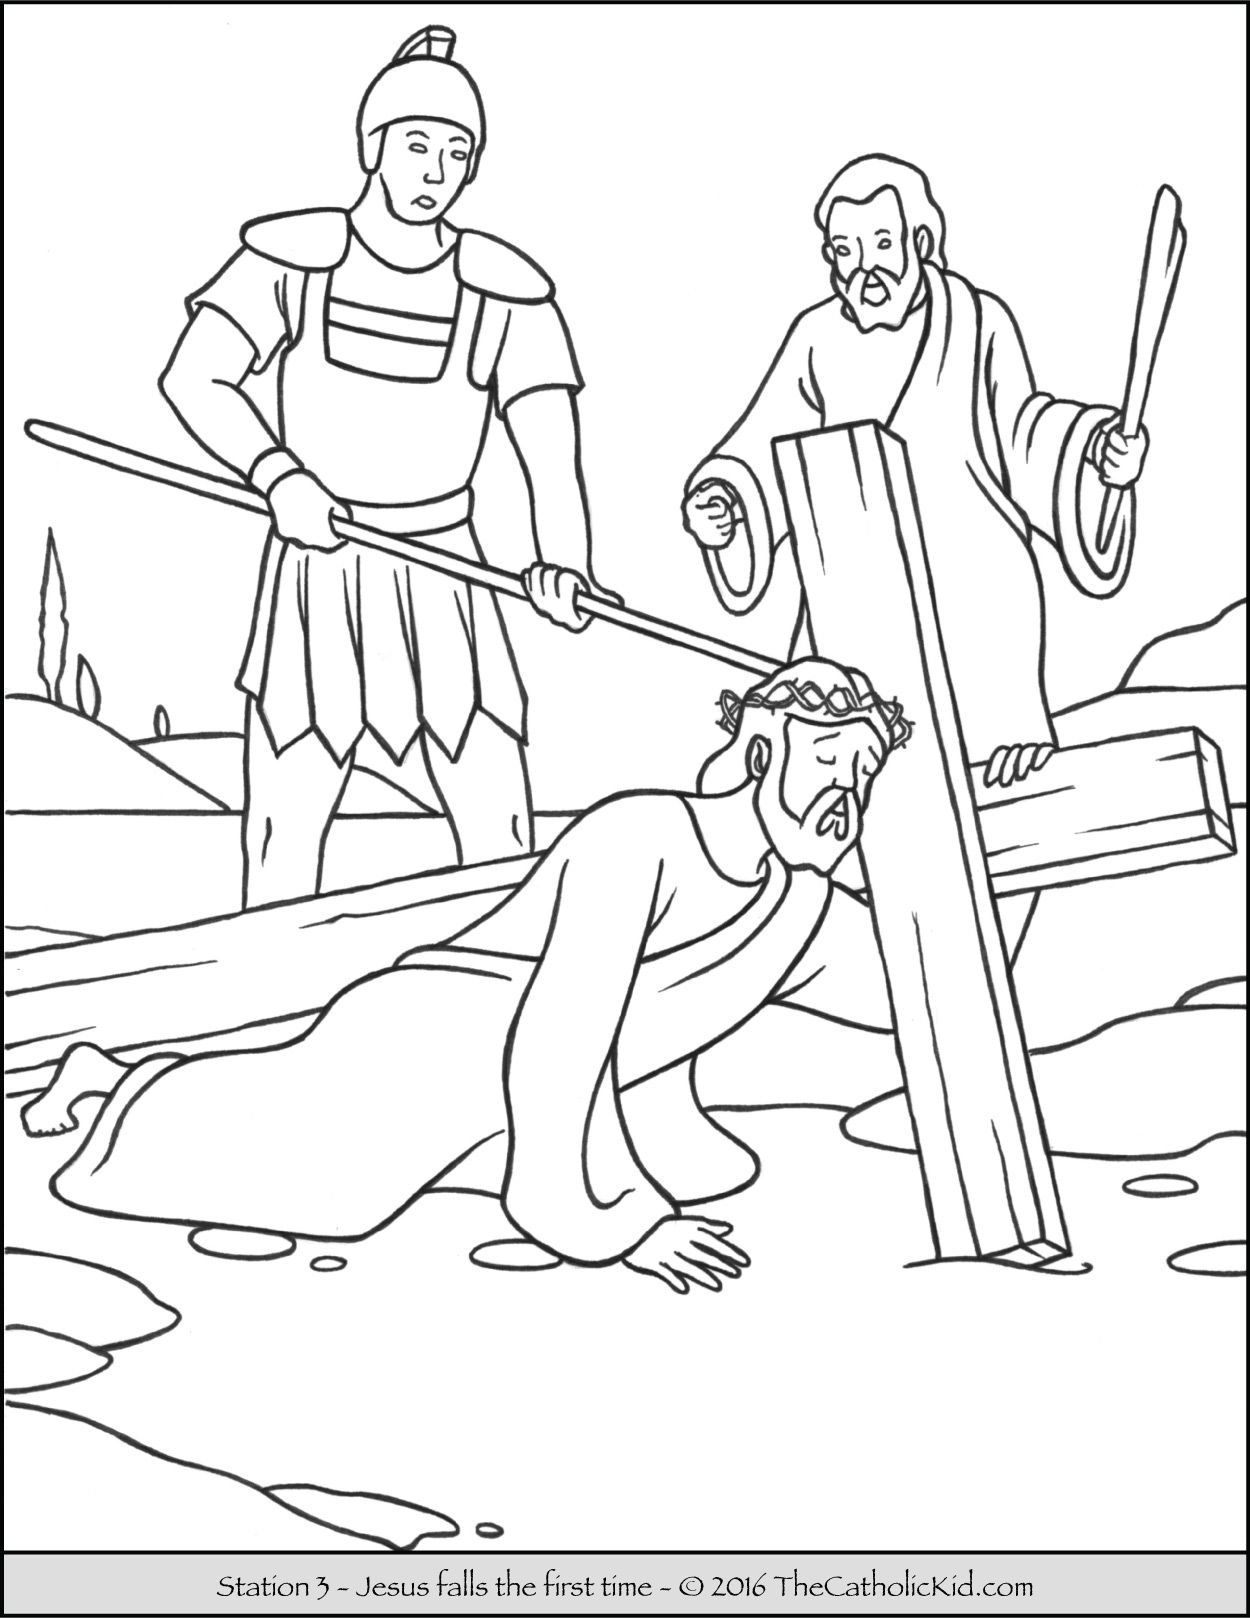 Coloring pages jesus on the cross - Stations Of The Cross Coloring Pages 3 Jesus Falls The First Time